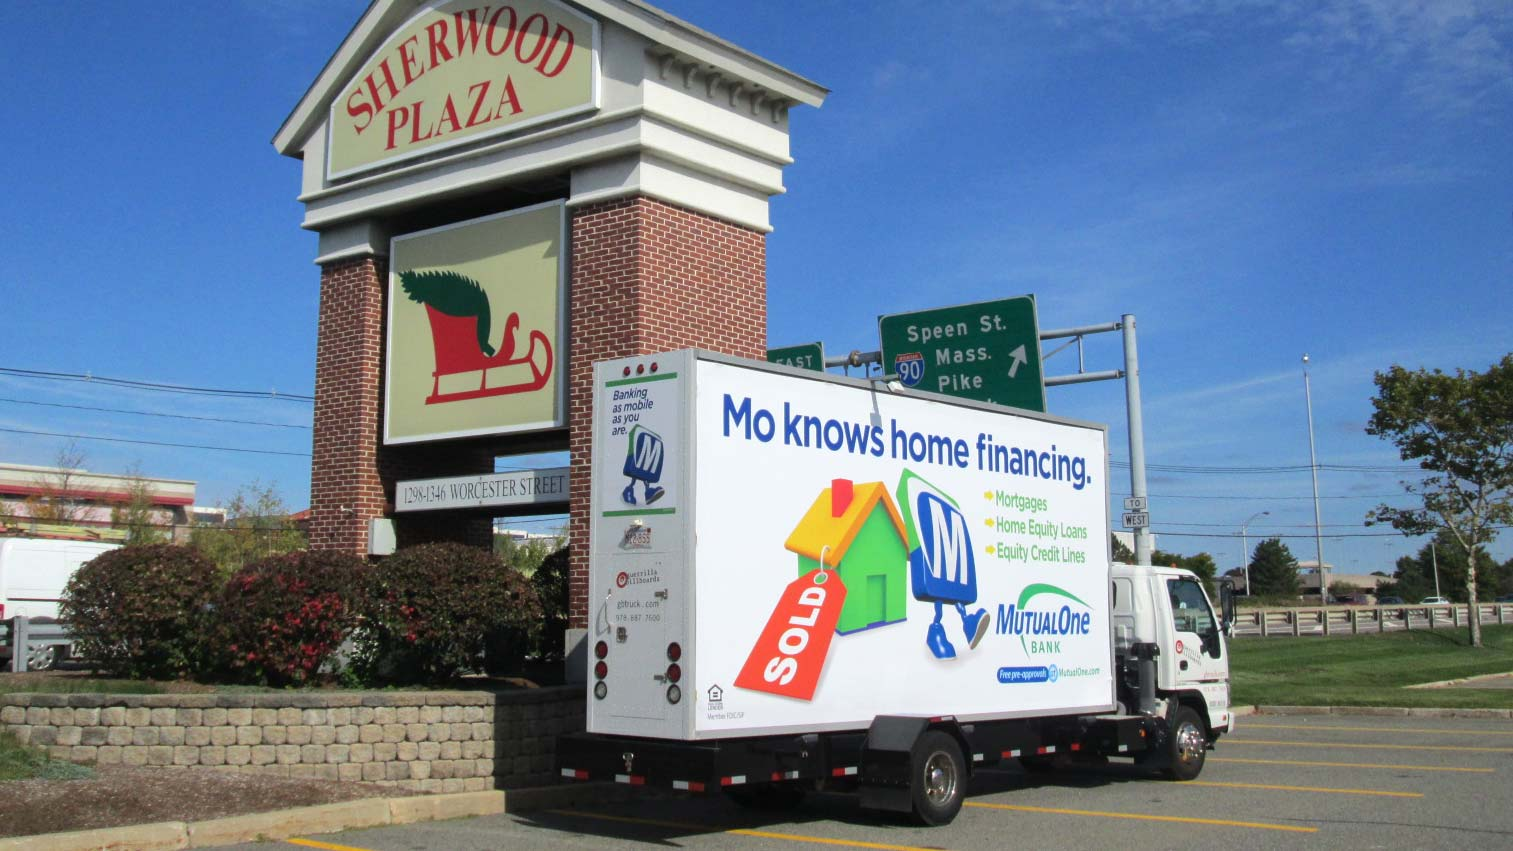 Billboard truck advertising home equity loans and residential mortgages near Boston.